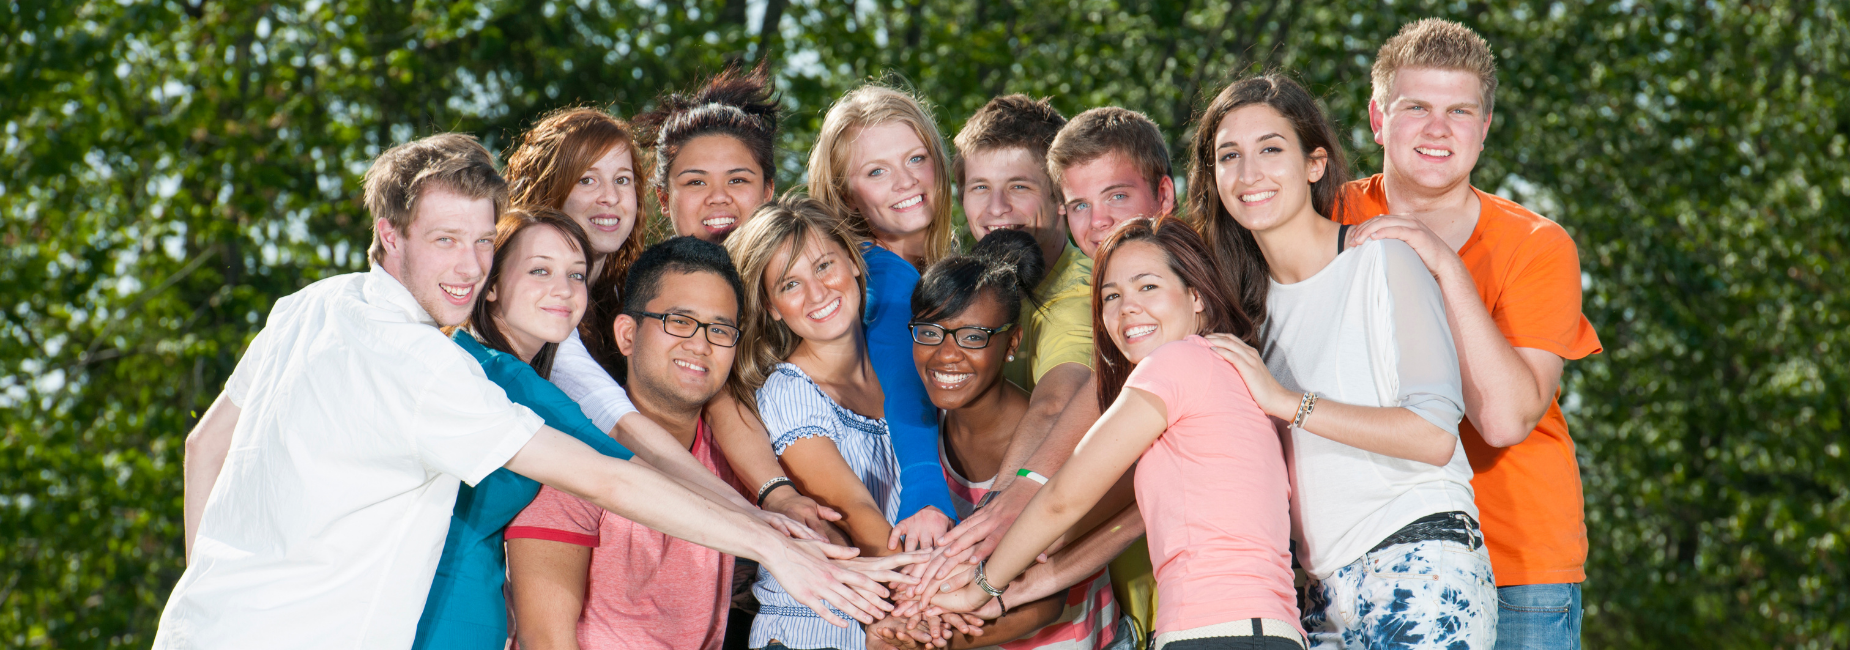 large group of teens stacking their hands together